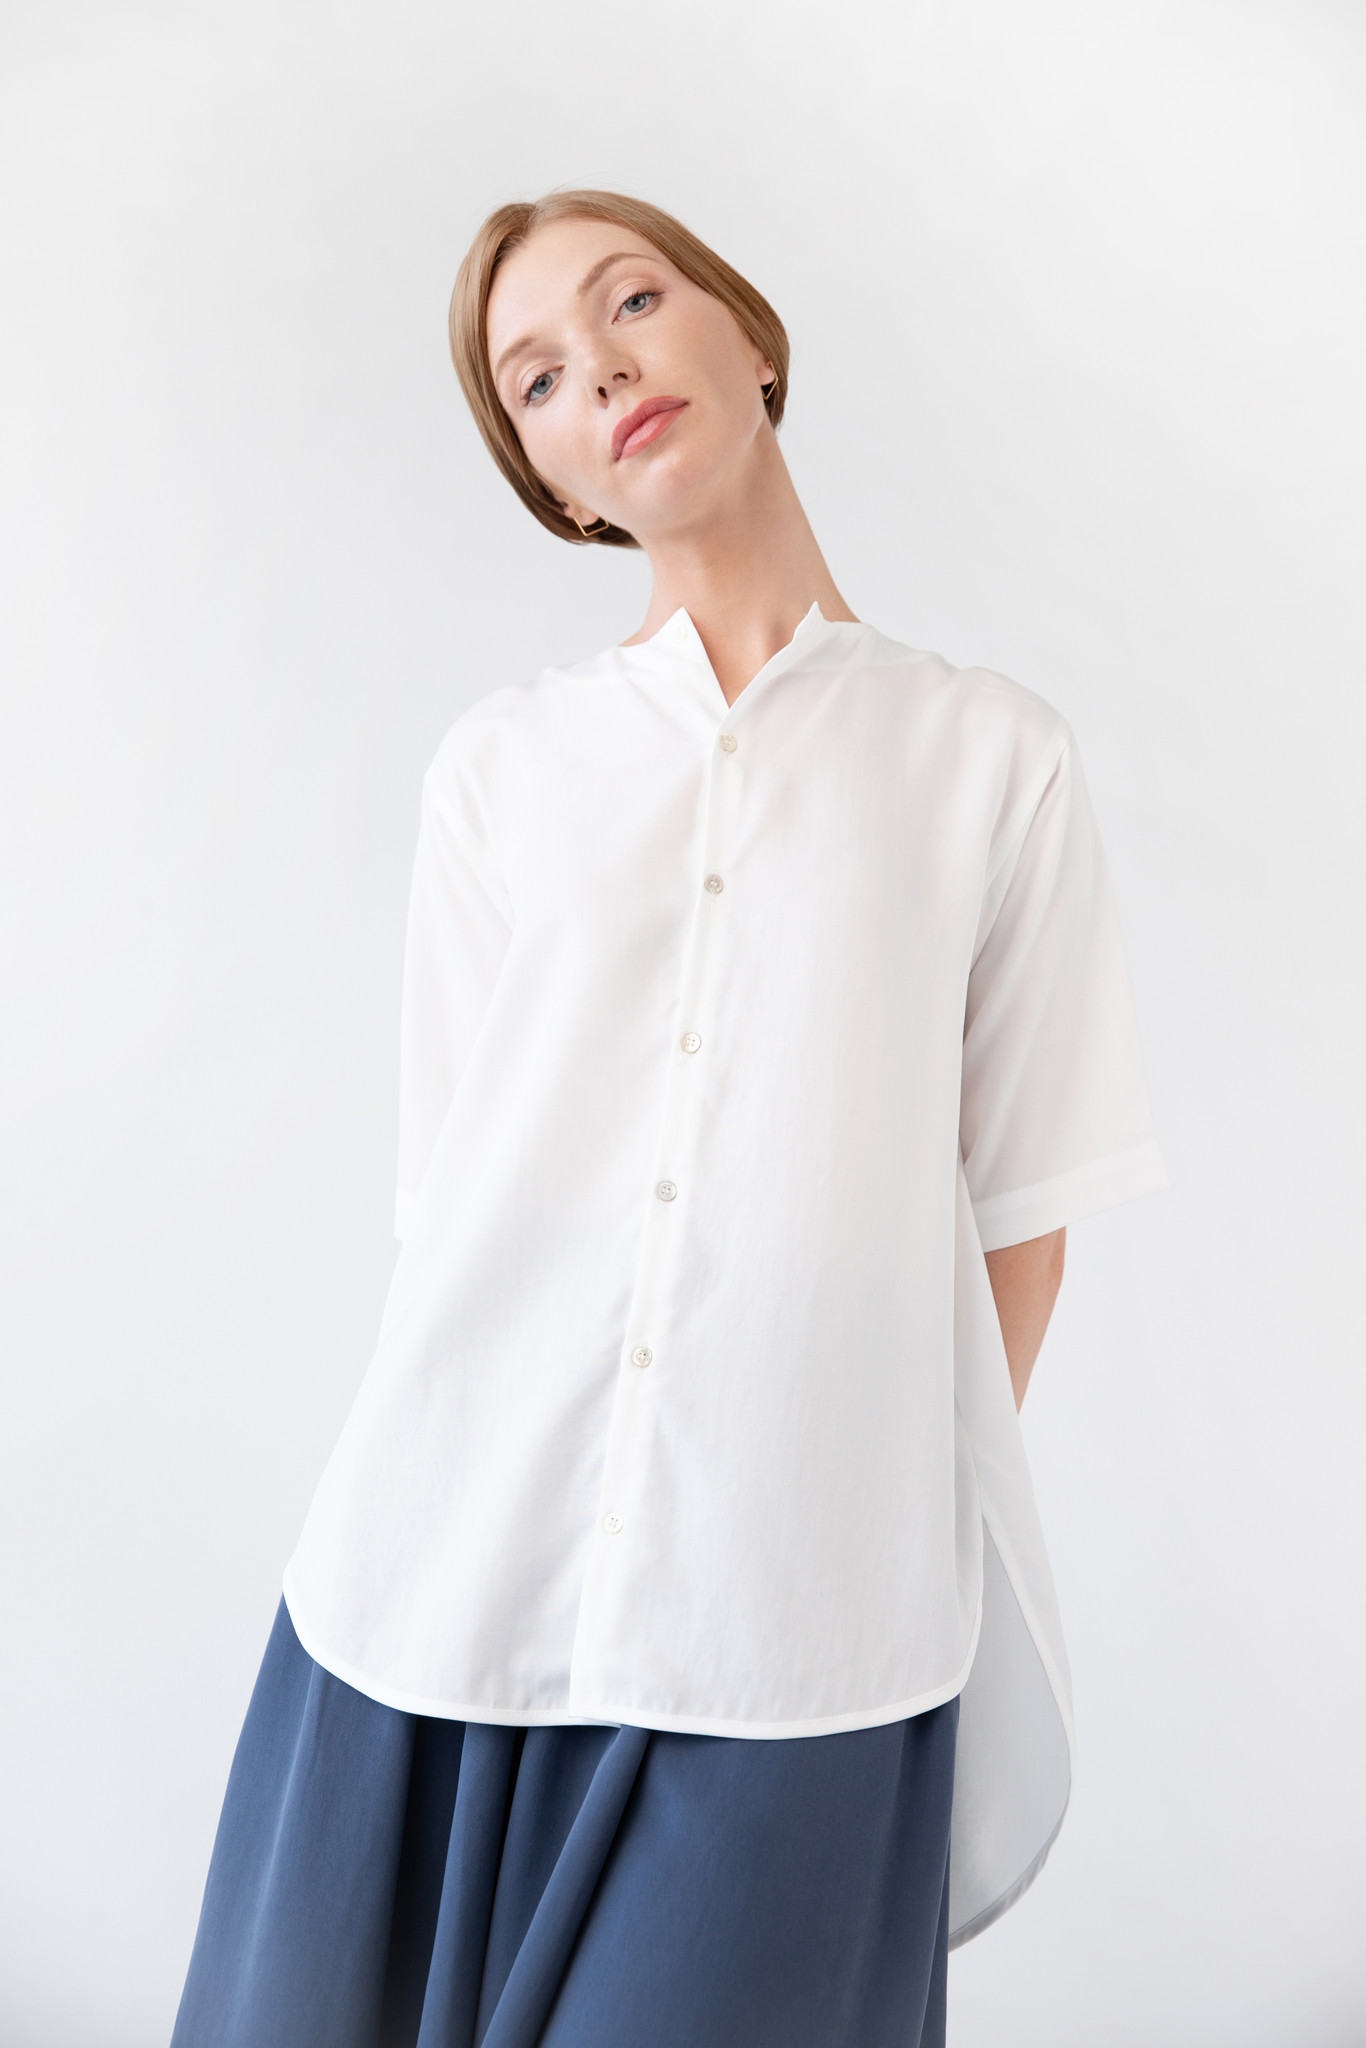 Blouse with rounded hem made of tencel - blue-1